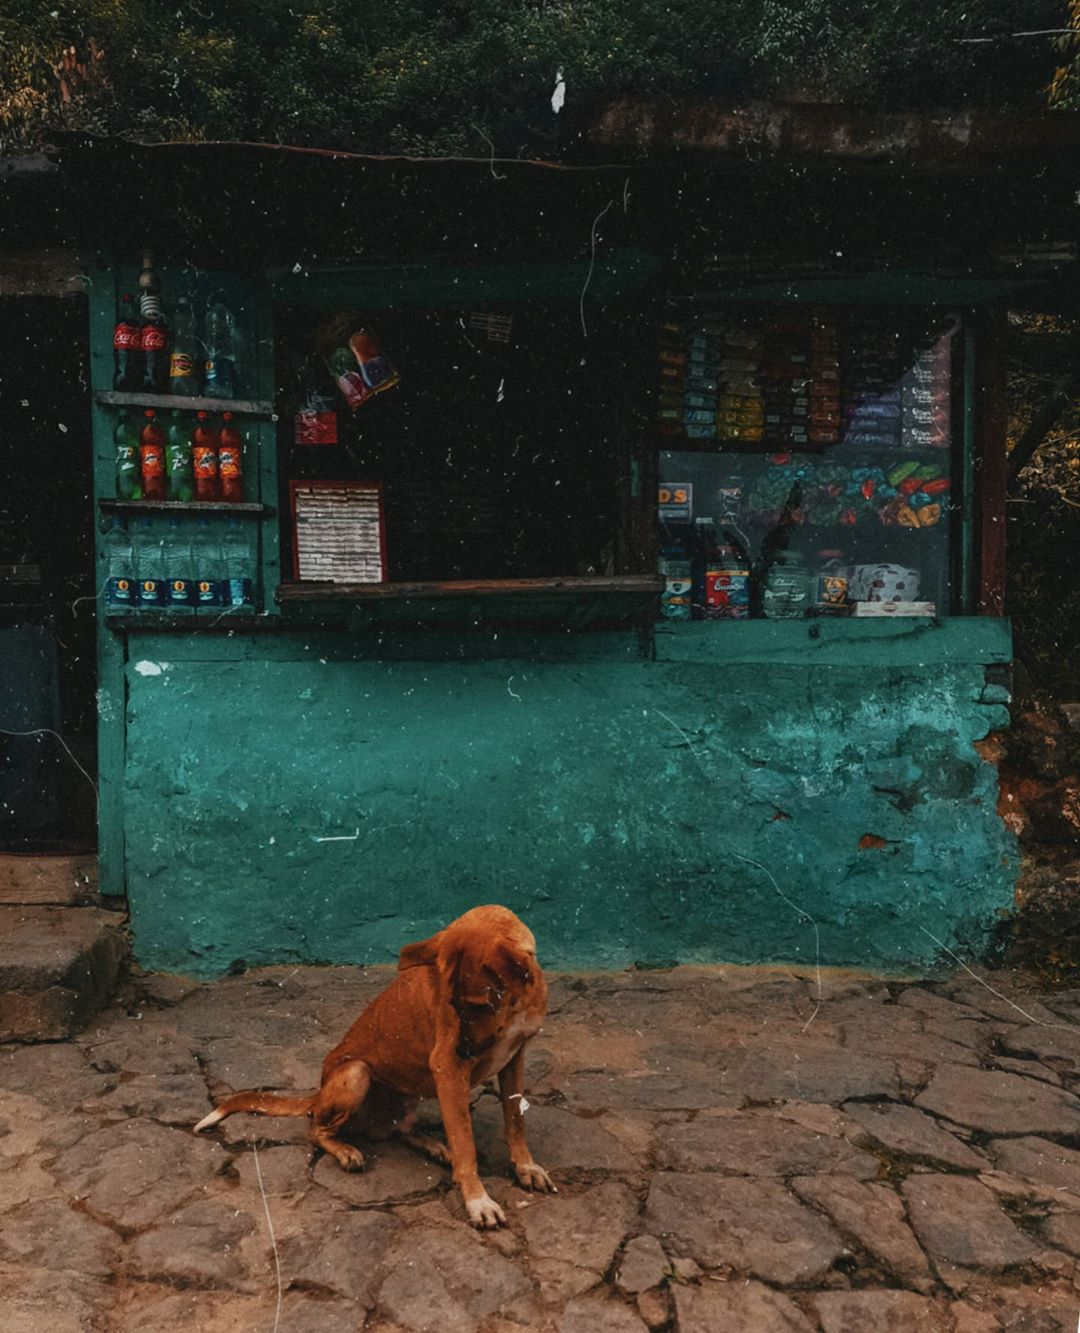 Dog outside a store